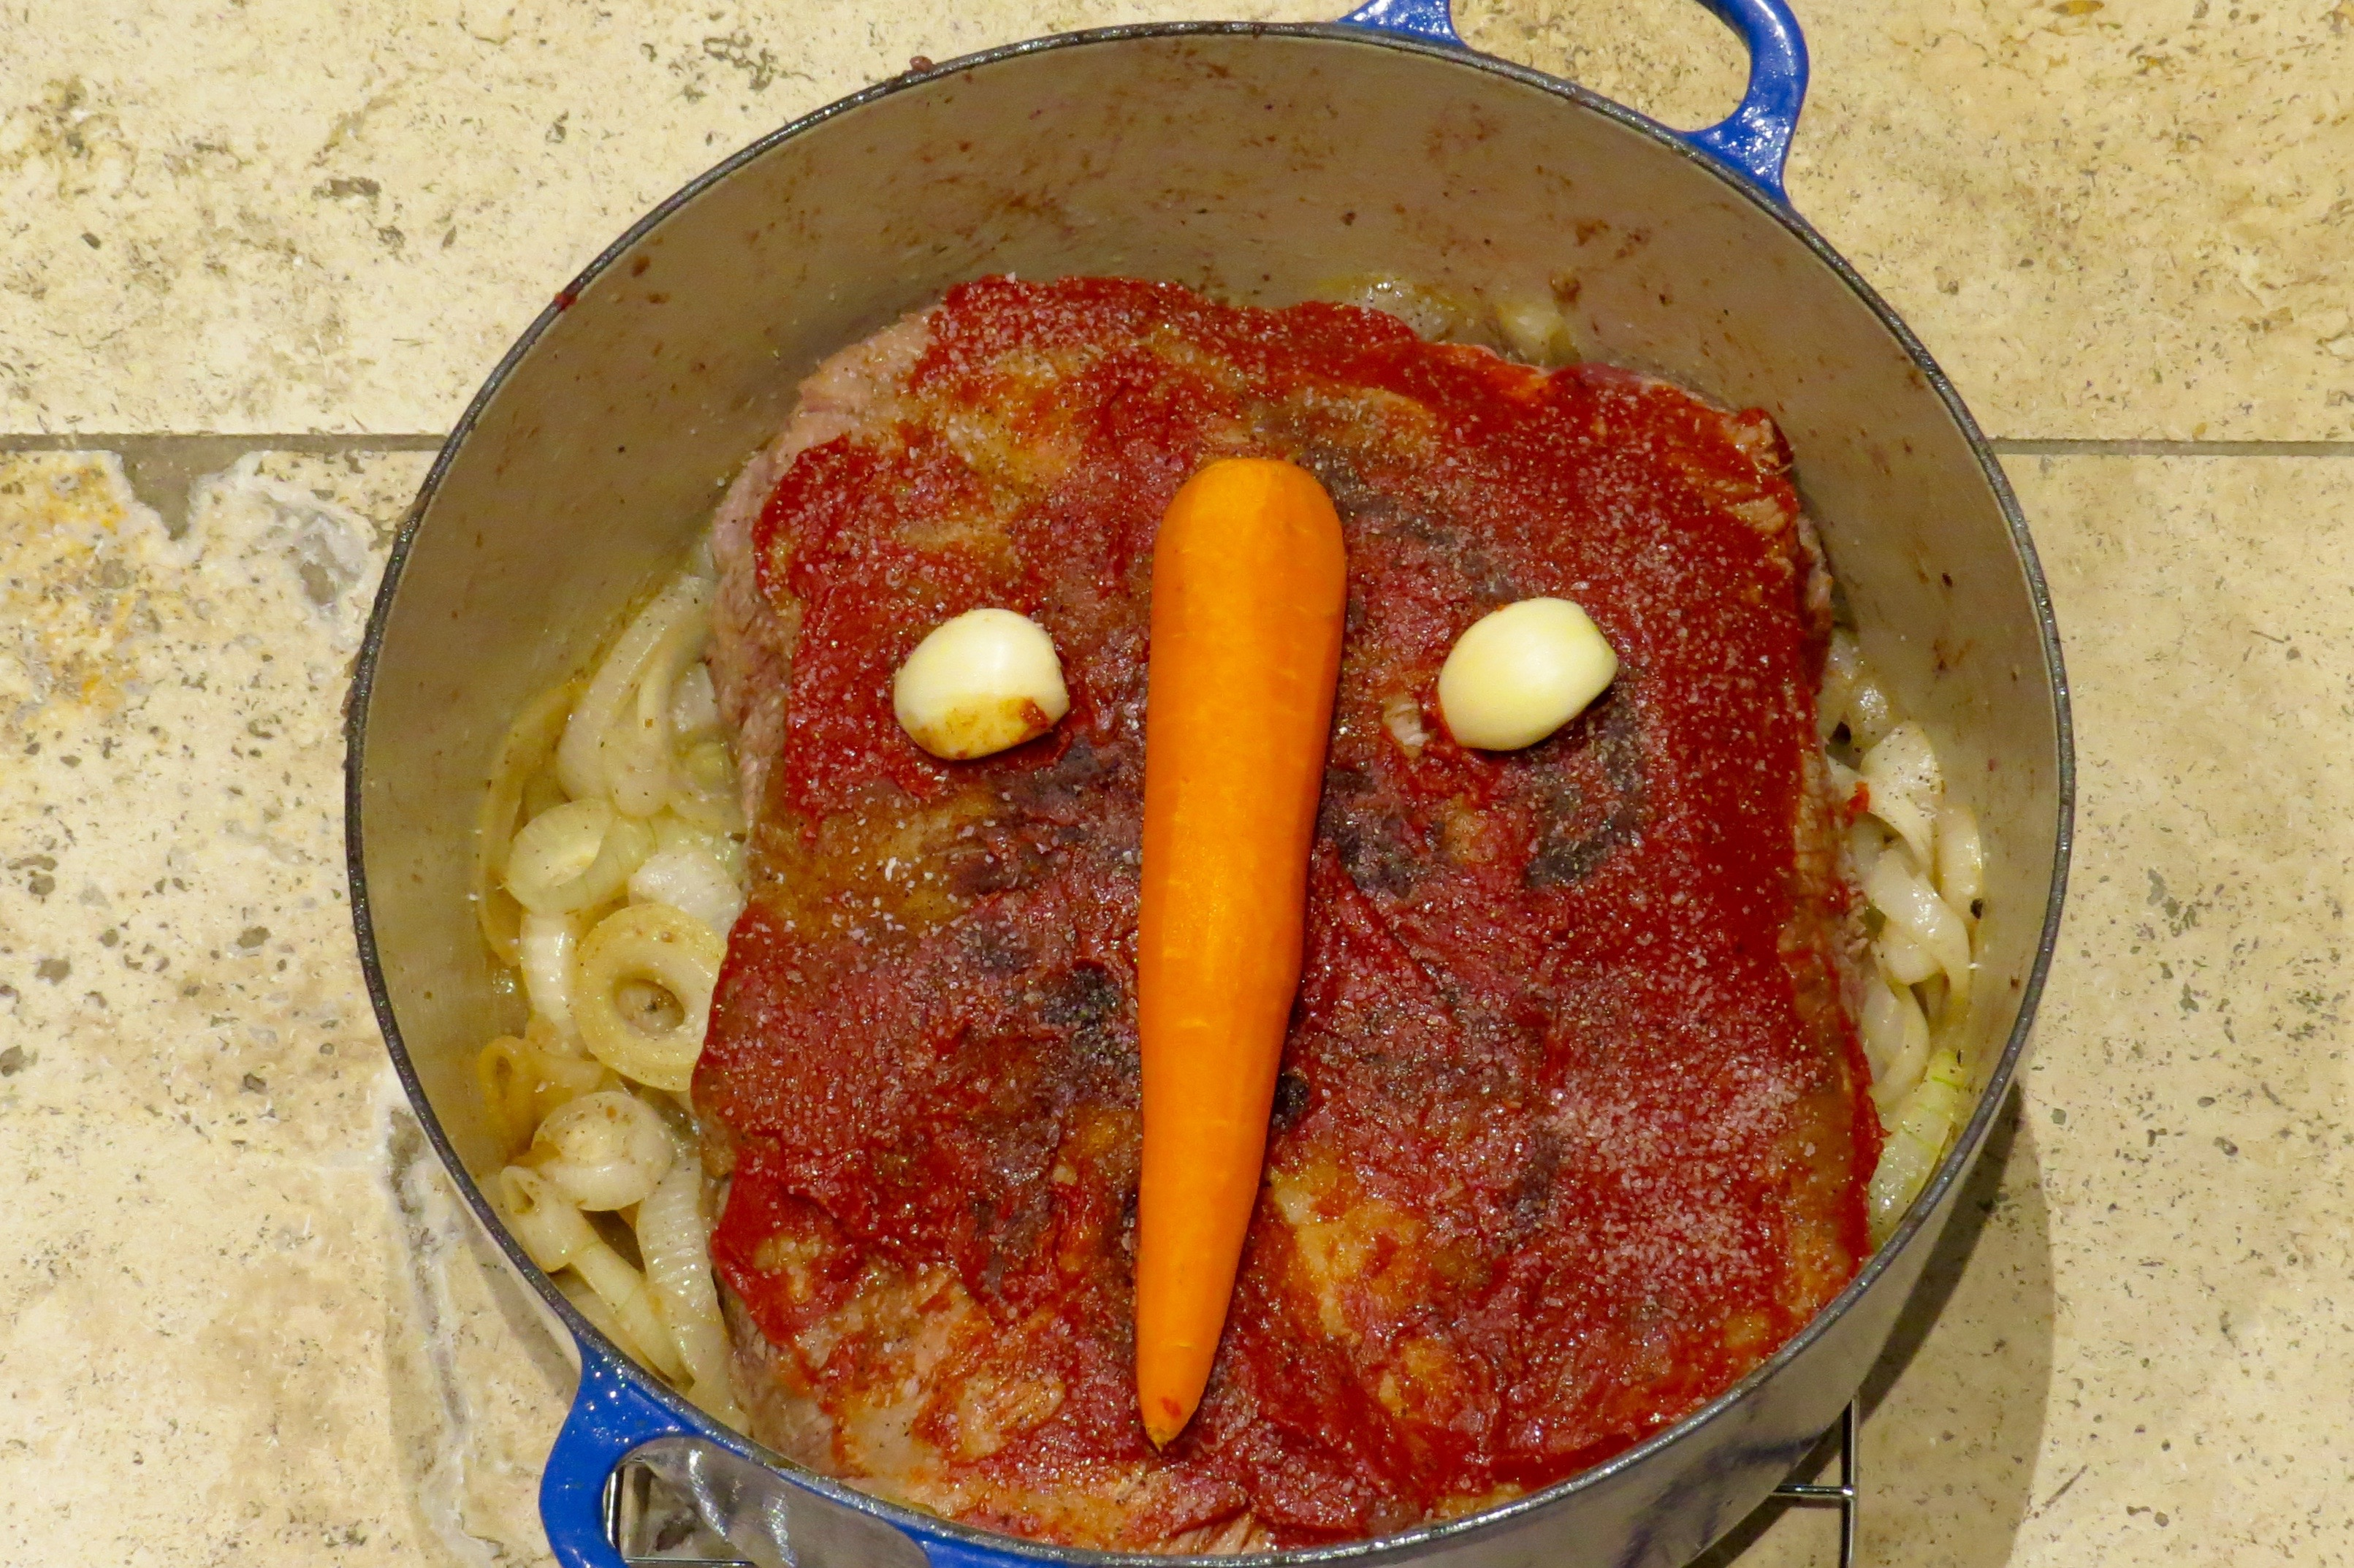 The beef brisket is ready for the oven, to cook, and cook, and cook some more.